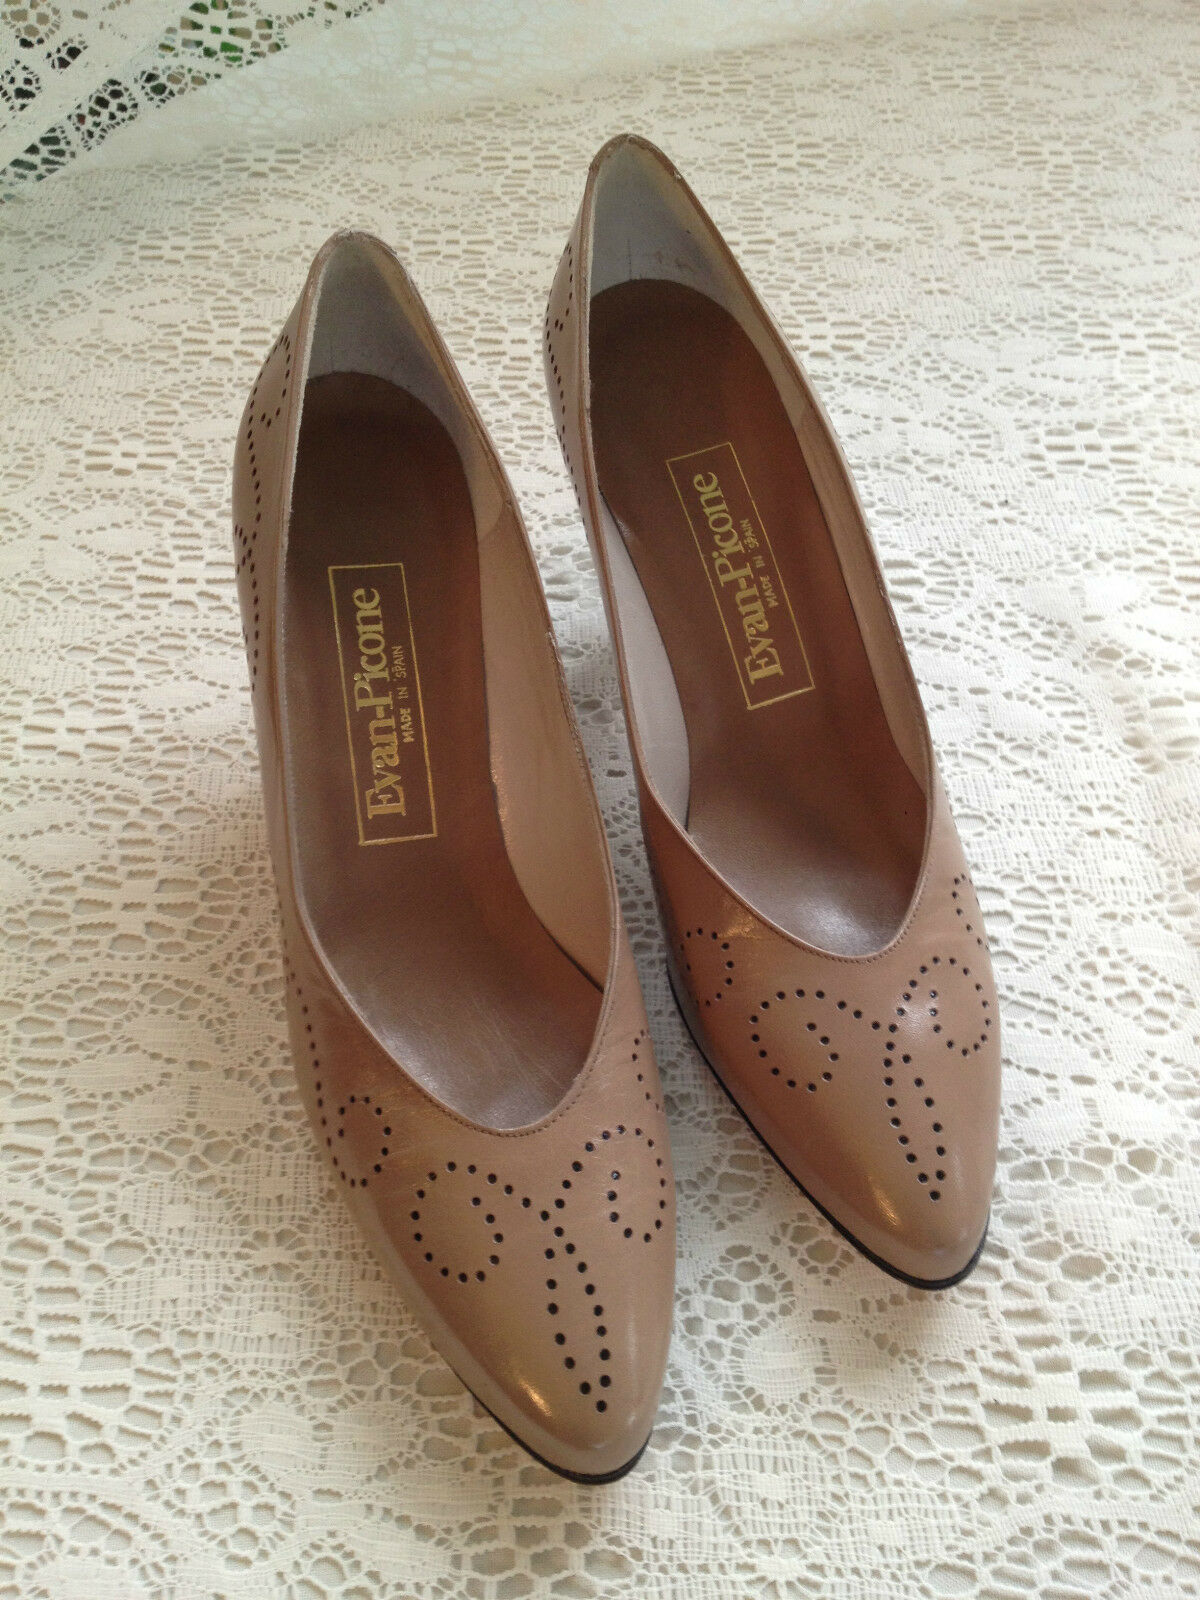 LADY'S TAUPE ALL LEATHER PUMP DRESS SHOES NWOB EVAN PICONE SIZE 9 N